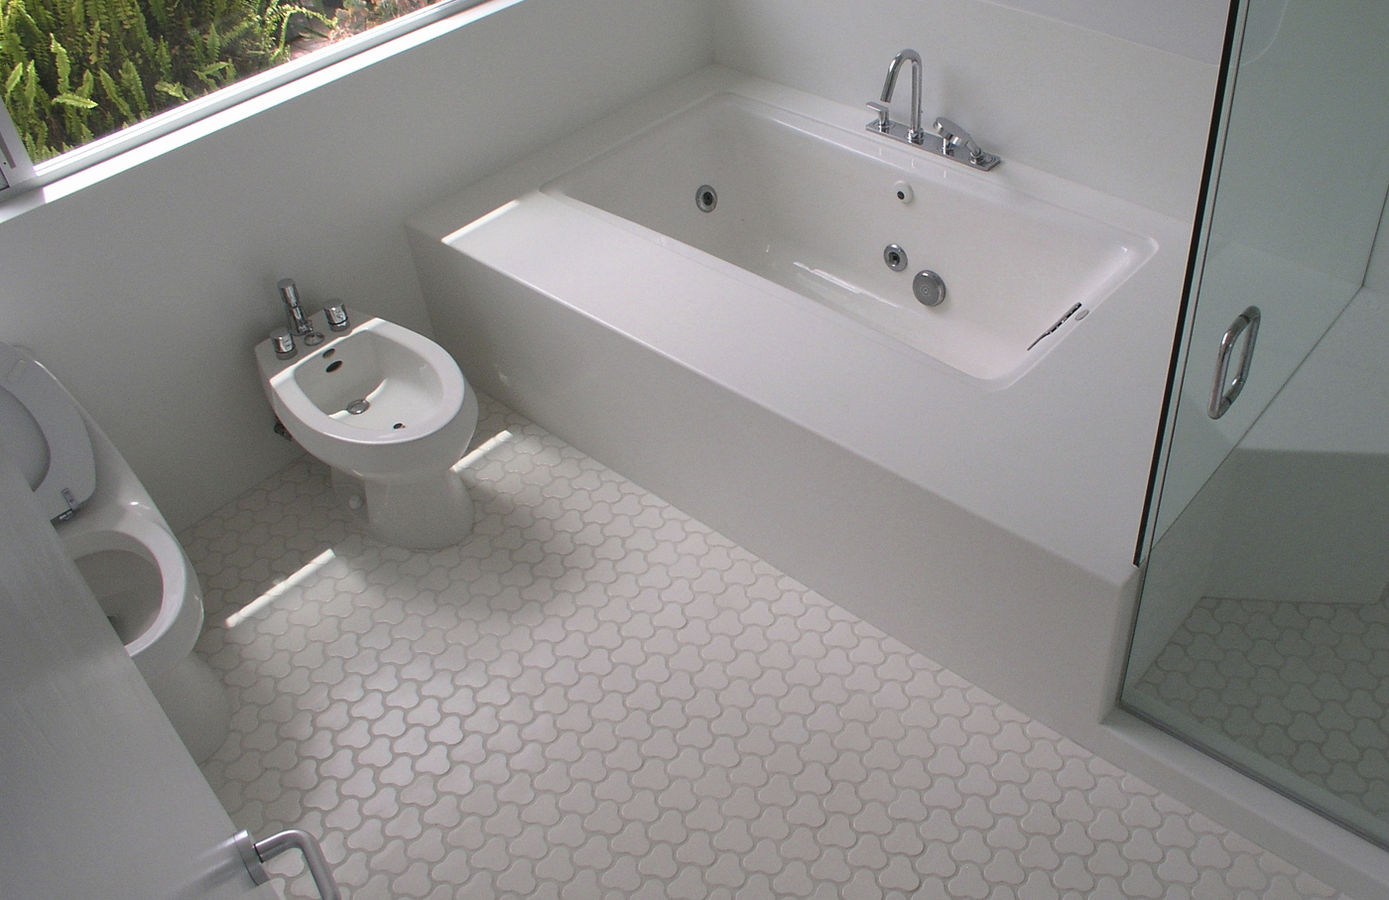 Top five tips for best tile for shower floor homesfeed unique shape white tiles for shower two modern closet units small tub and its faucet frameless dailygadgetfo Gallery